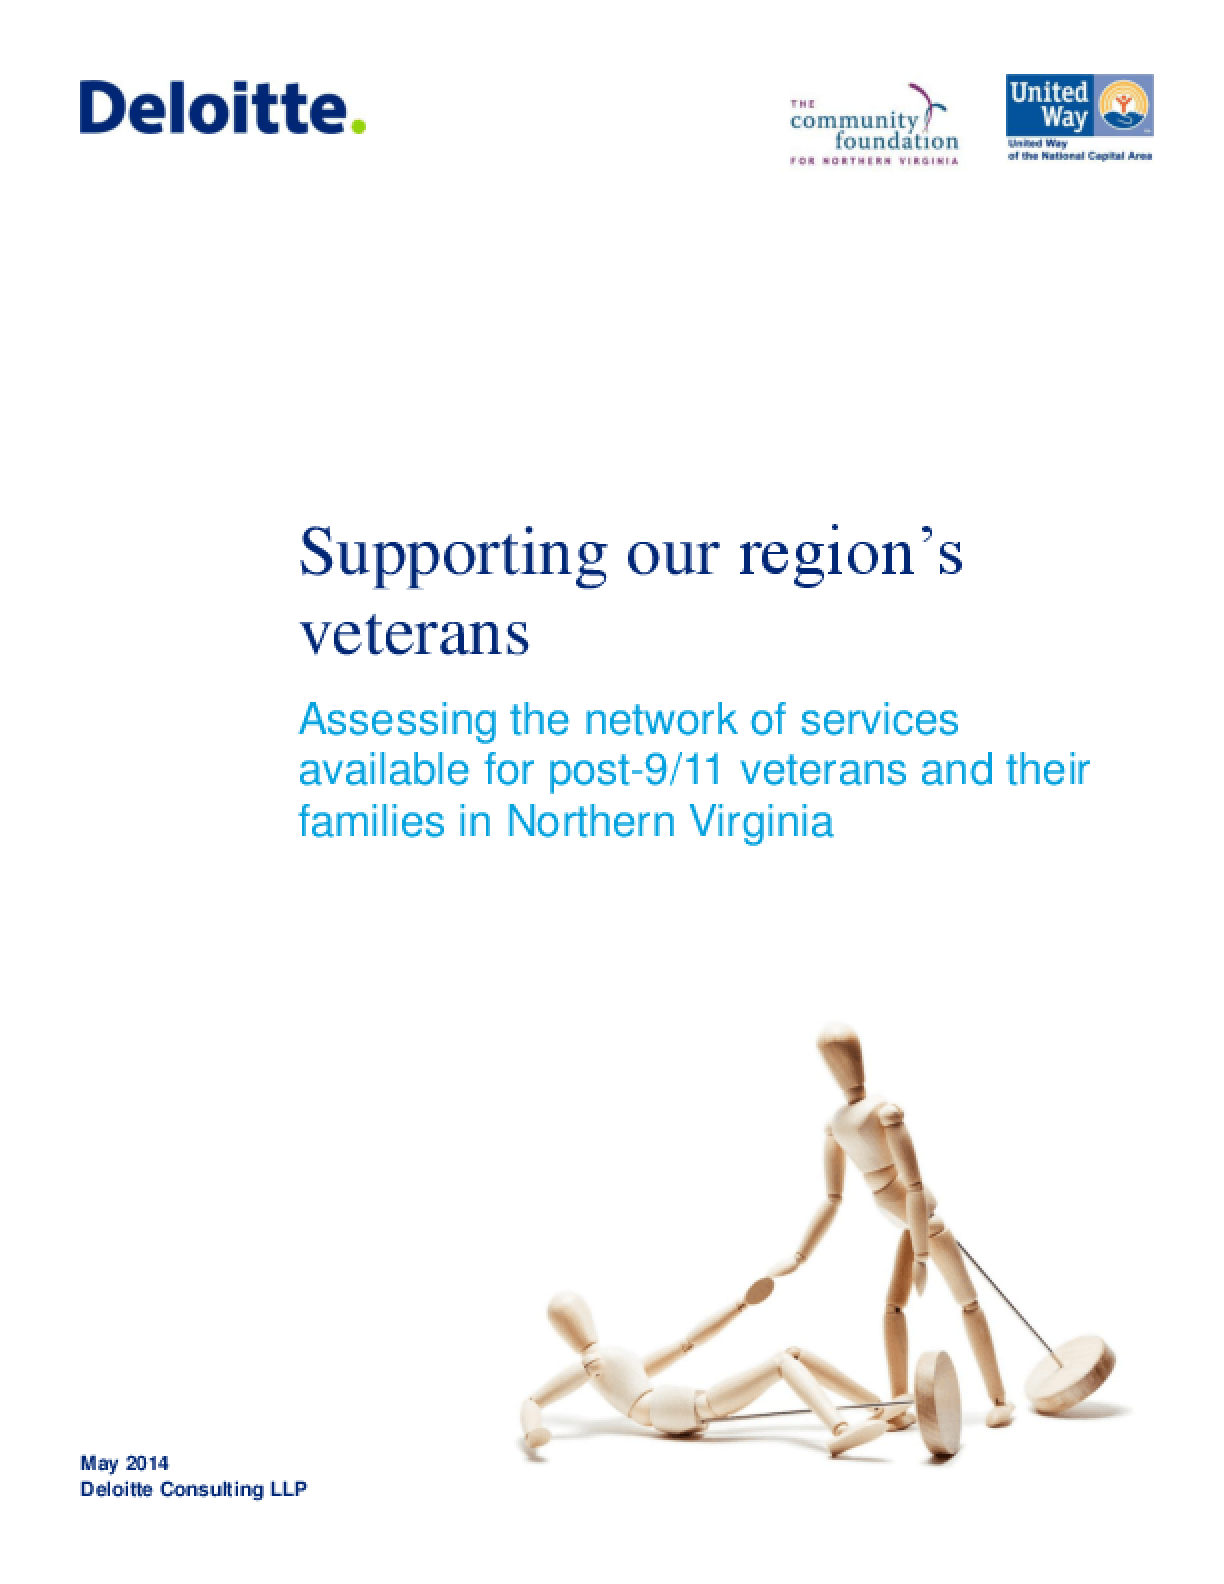 Supporting Our Region's Veterans: Assessing the Network of Services Available for Post 9/11 Veterans and Their Families in Northern Virginia